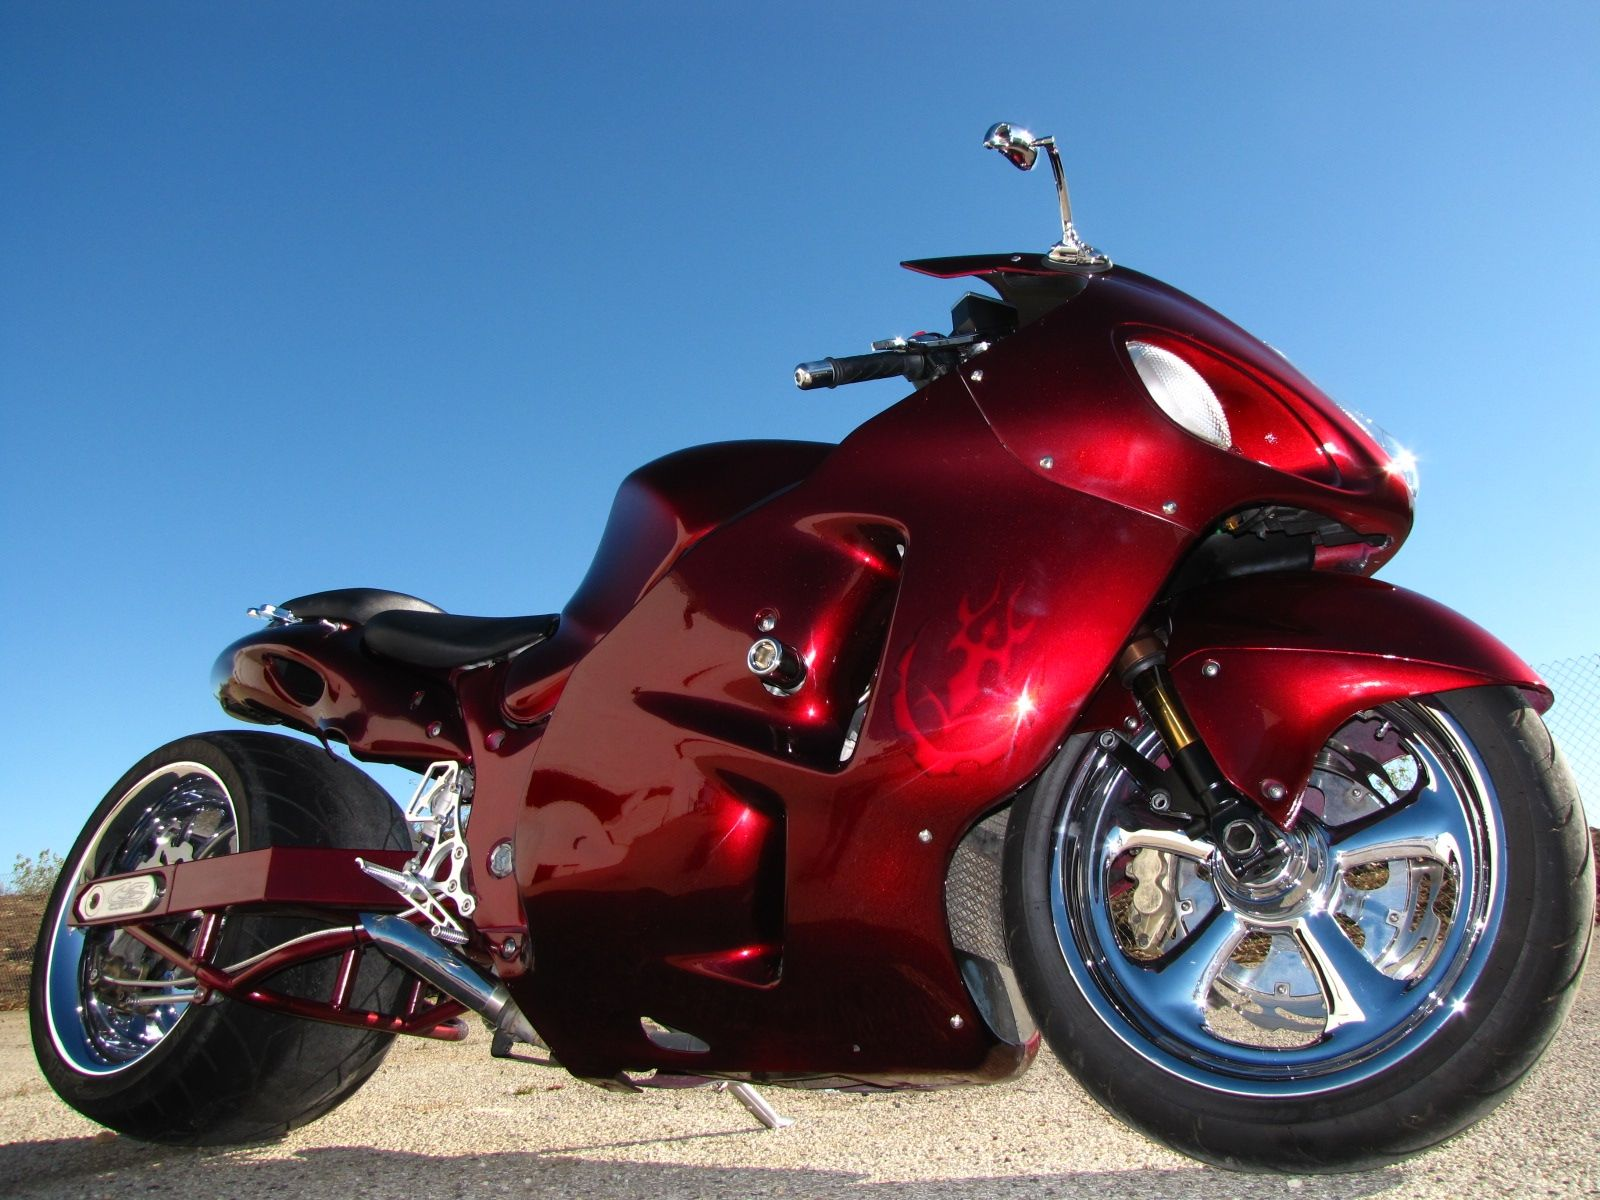 Click here to download in HD Format >>       Red Motorbike Hd Wallpaper    http://www.superwallpapers.in/wallpaper/red-motorbike-hd-wallpaper.html